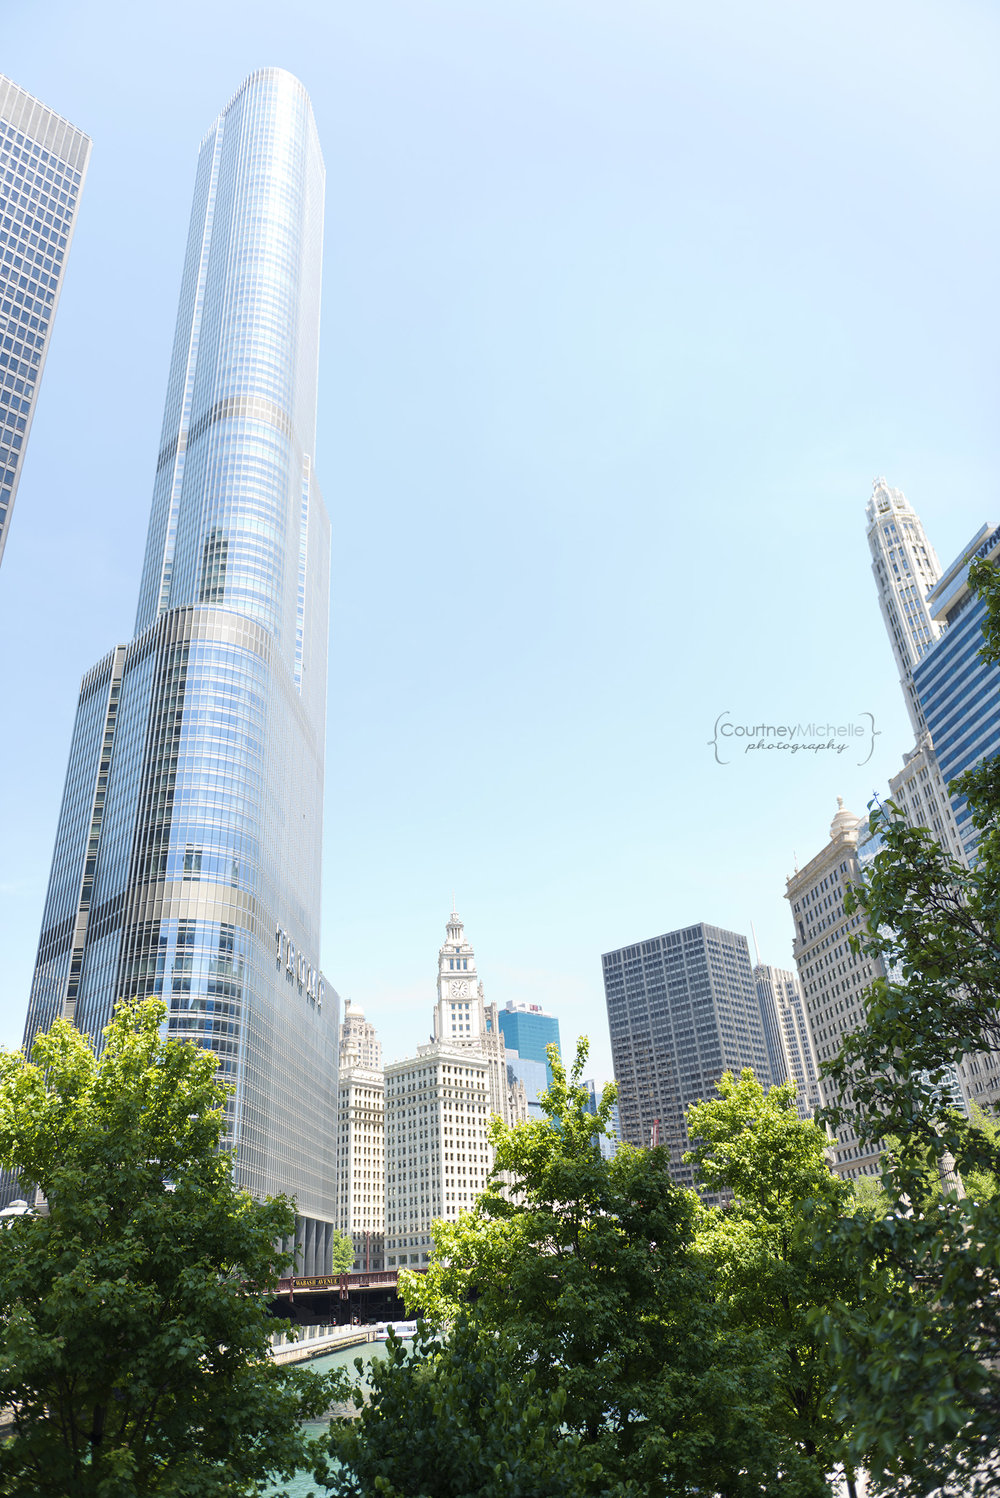 chicago_river_trump_tower_chicago_street_photography_courtney_laper_photography.jpg